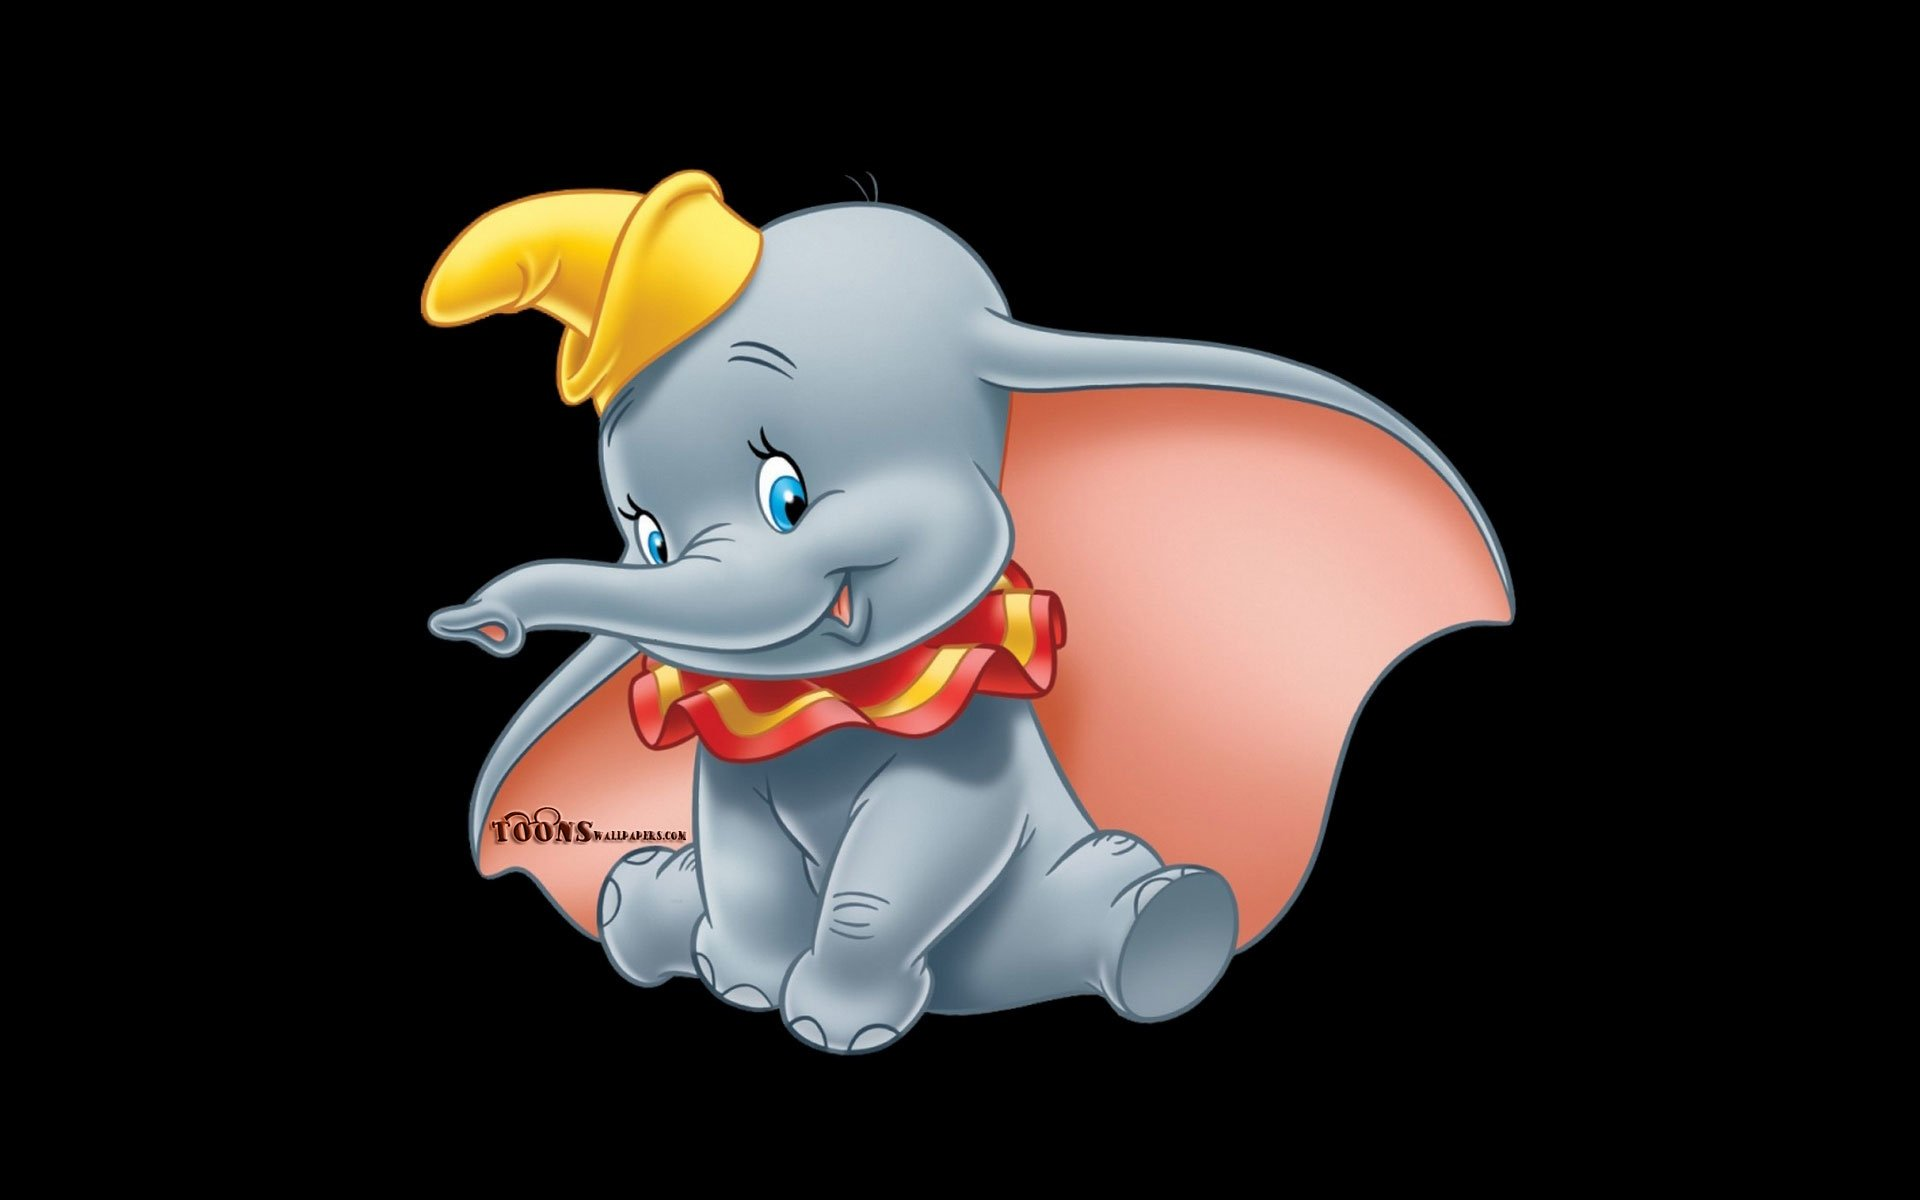 Cute Wallpapers For Facebook Cover Photo Dumbo Hd Wallpaper Background Image 1920x1200 Id